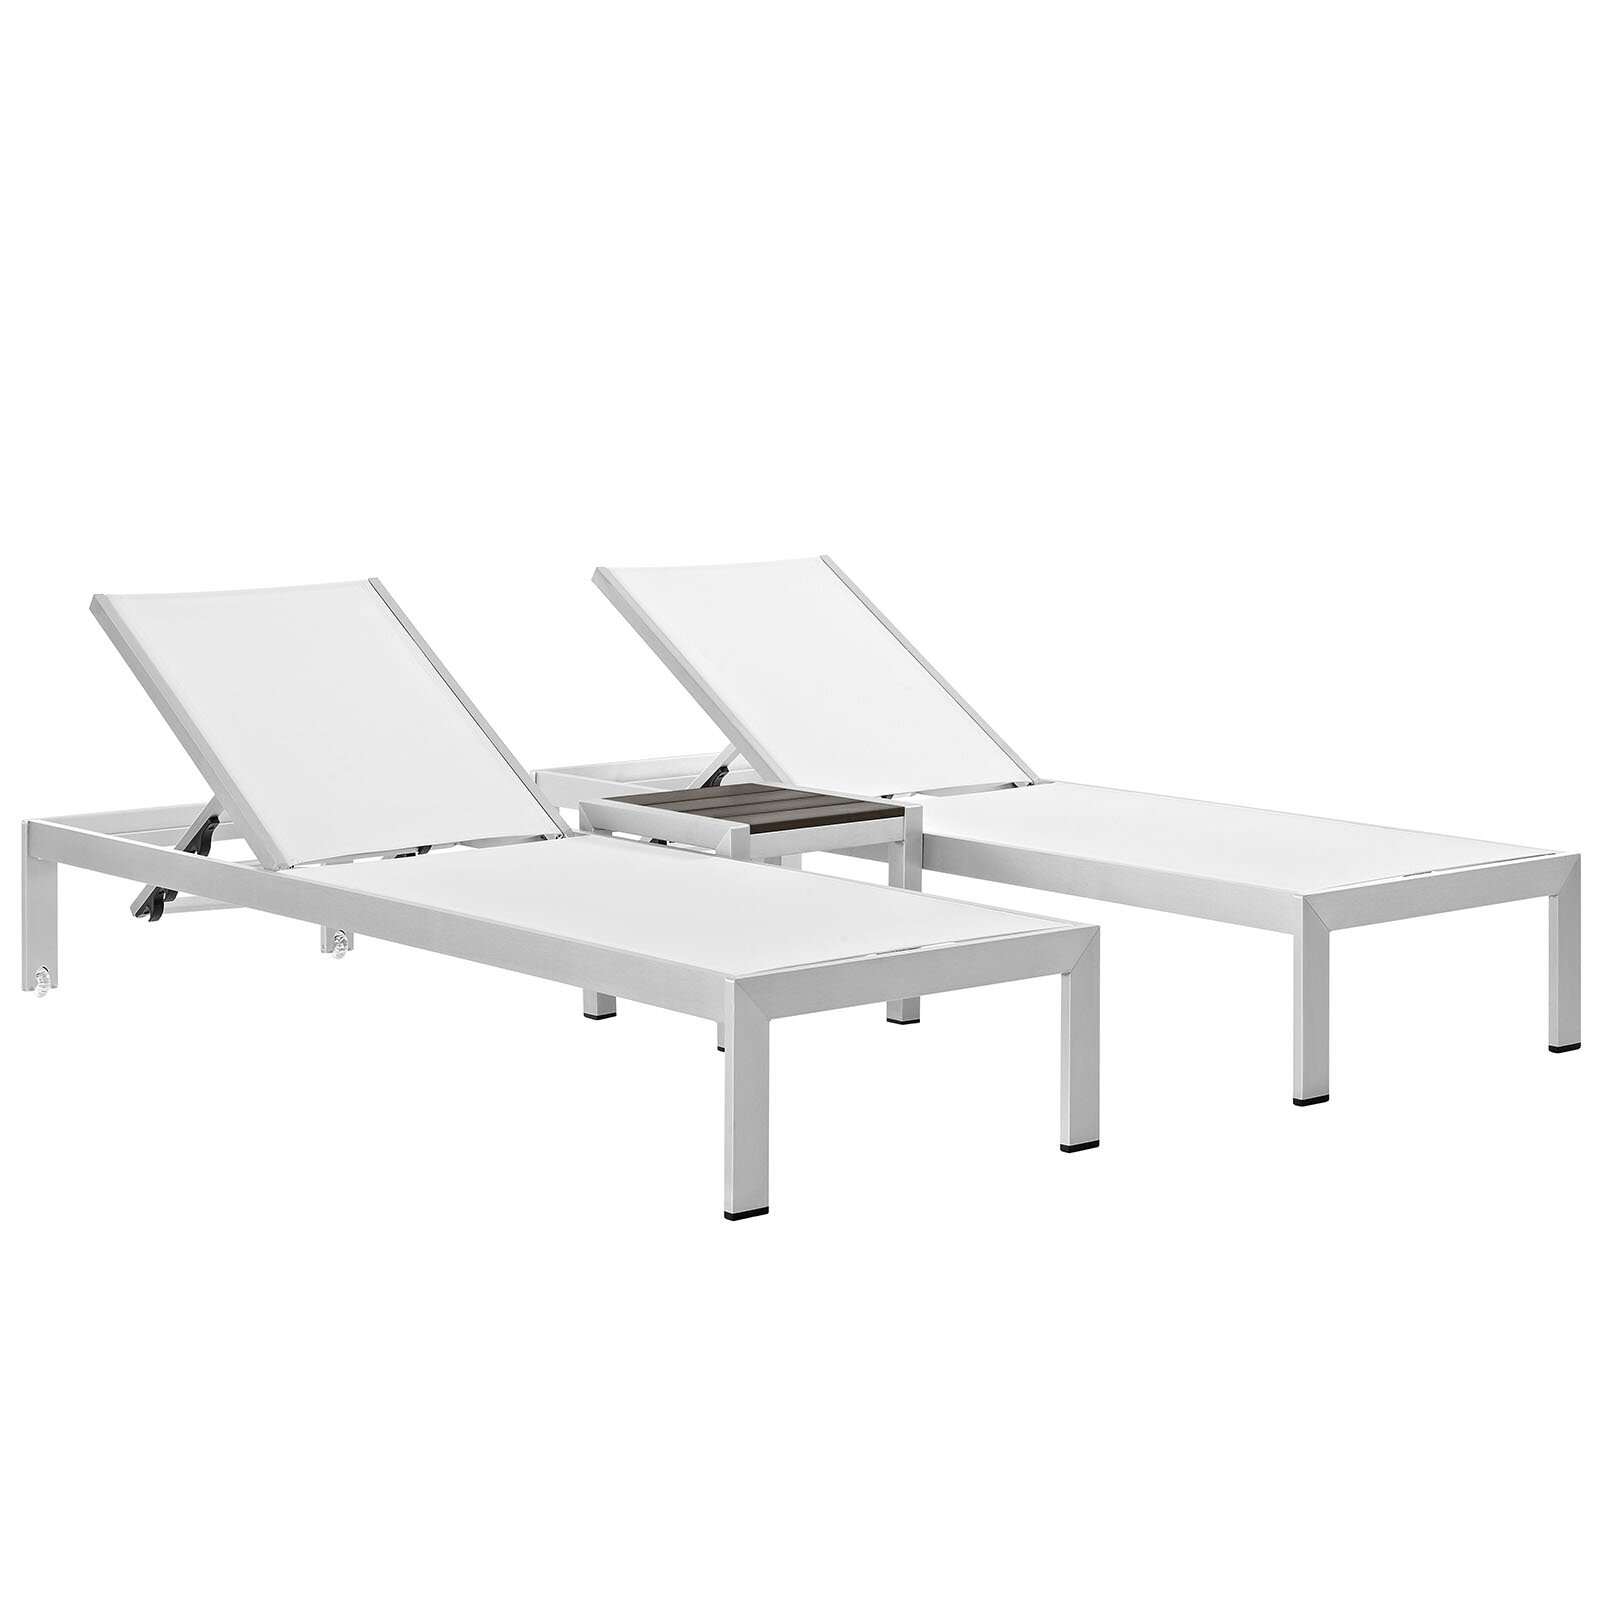 Modway shore outdoor patio 3 piece single chaise and table - Ensemble chaise table ...